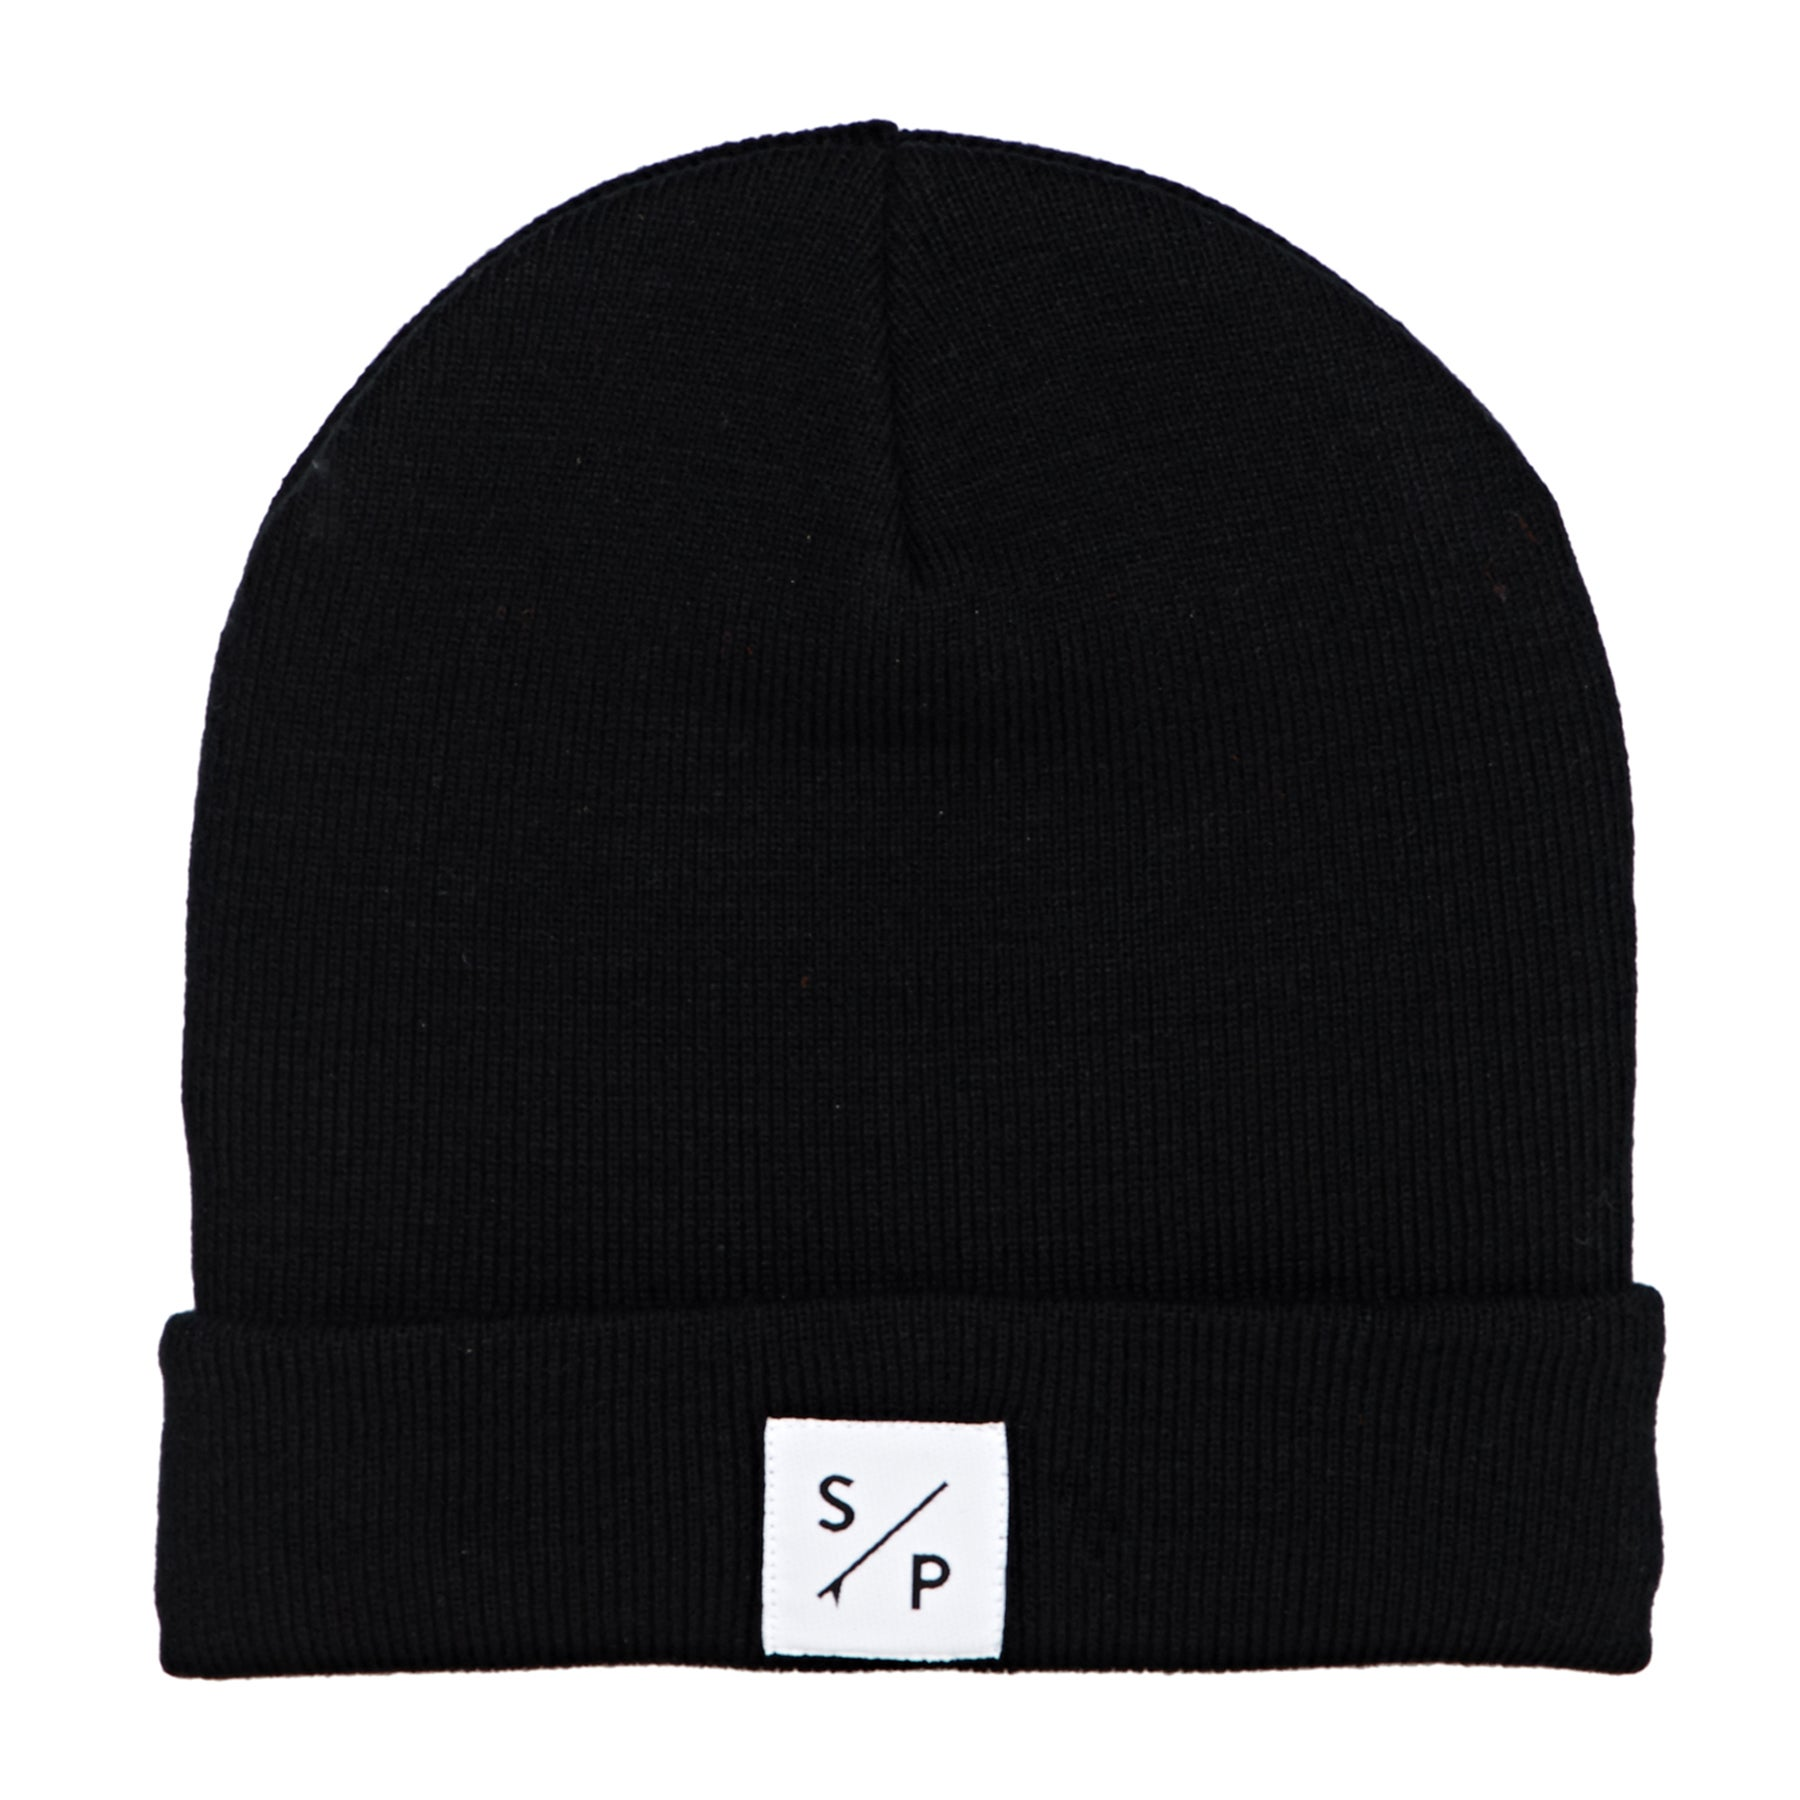 Surf Perimeters The SP Classic Knit Beanie - Black